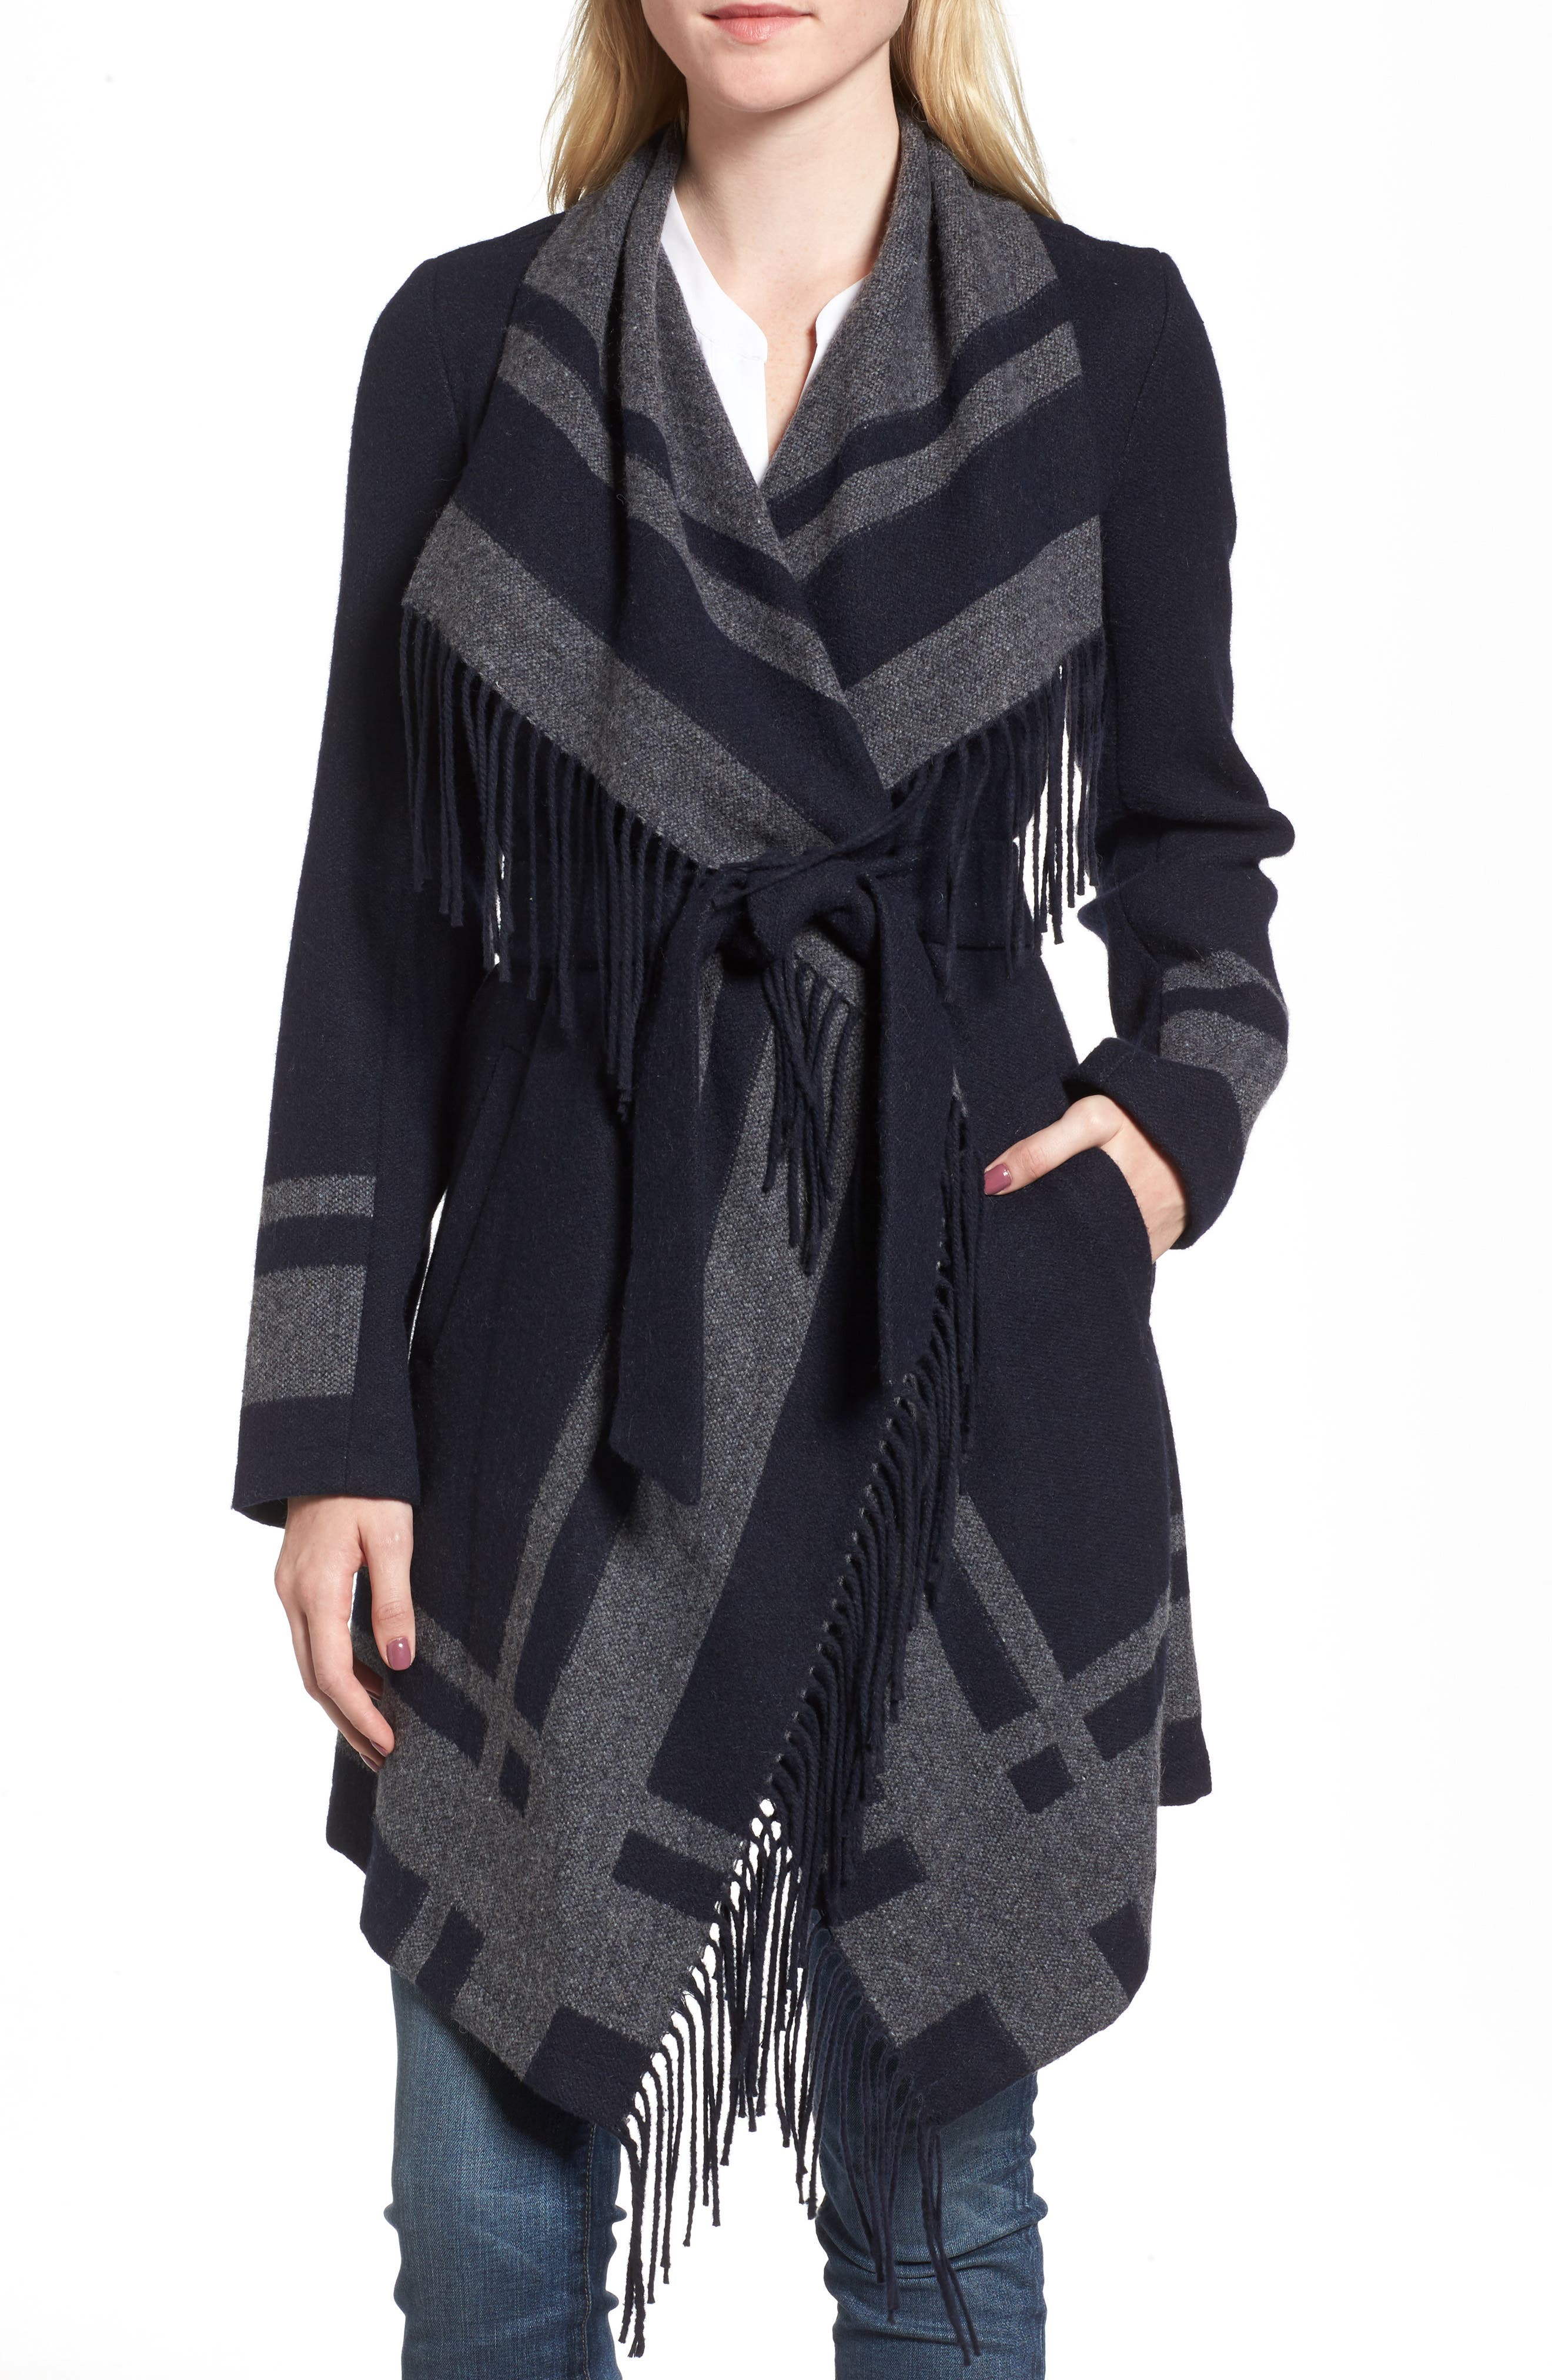 Alternate Image 1 Selected - Vince Camuto Wrap Coat